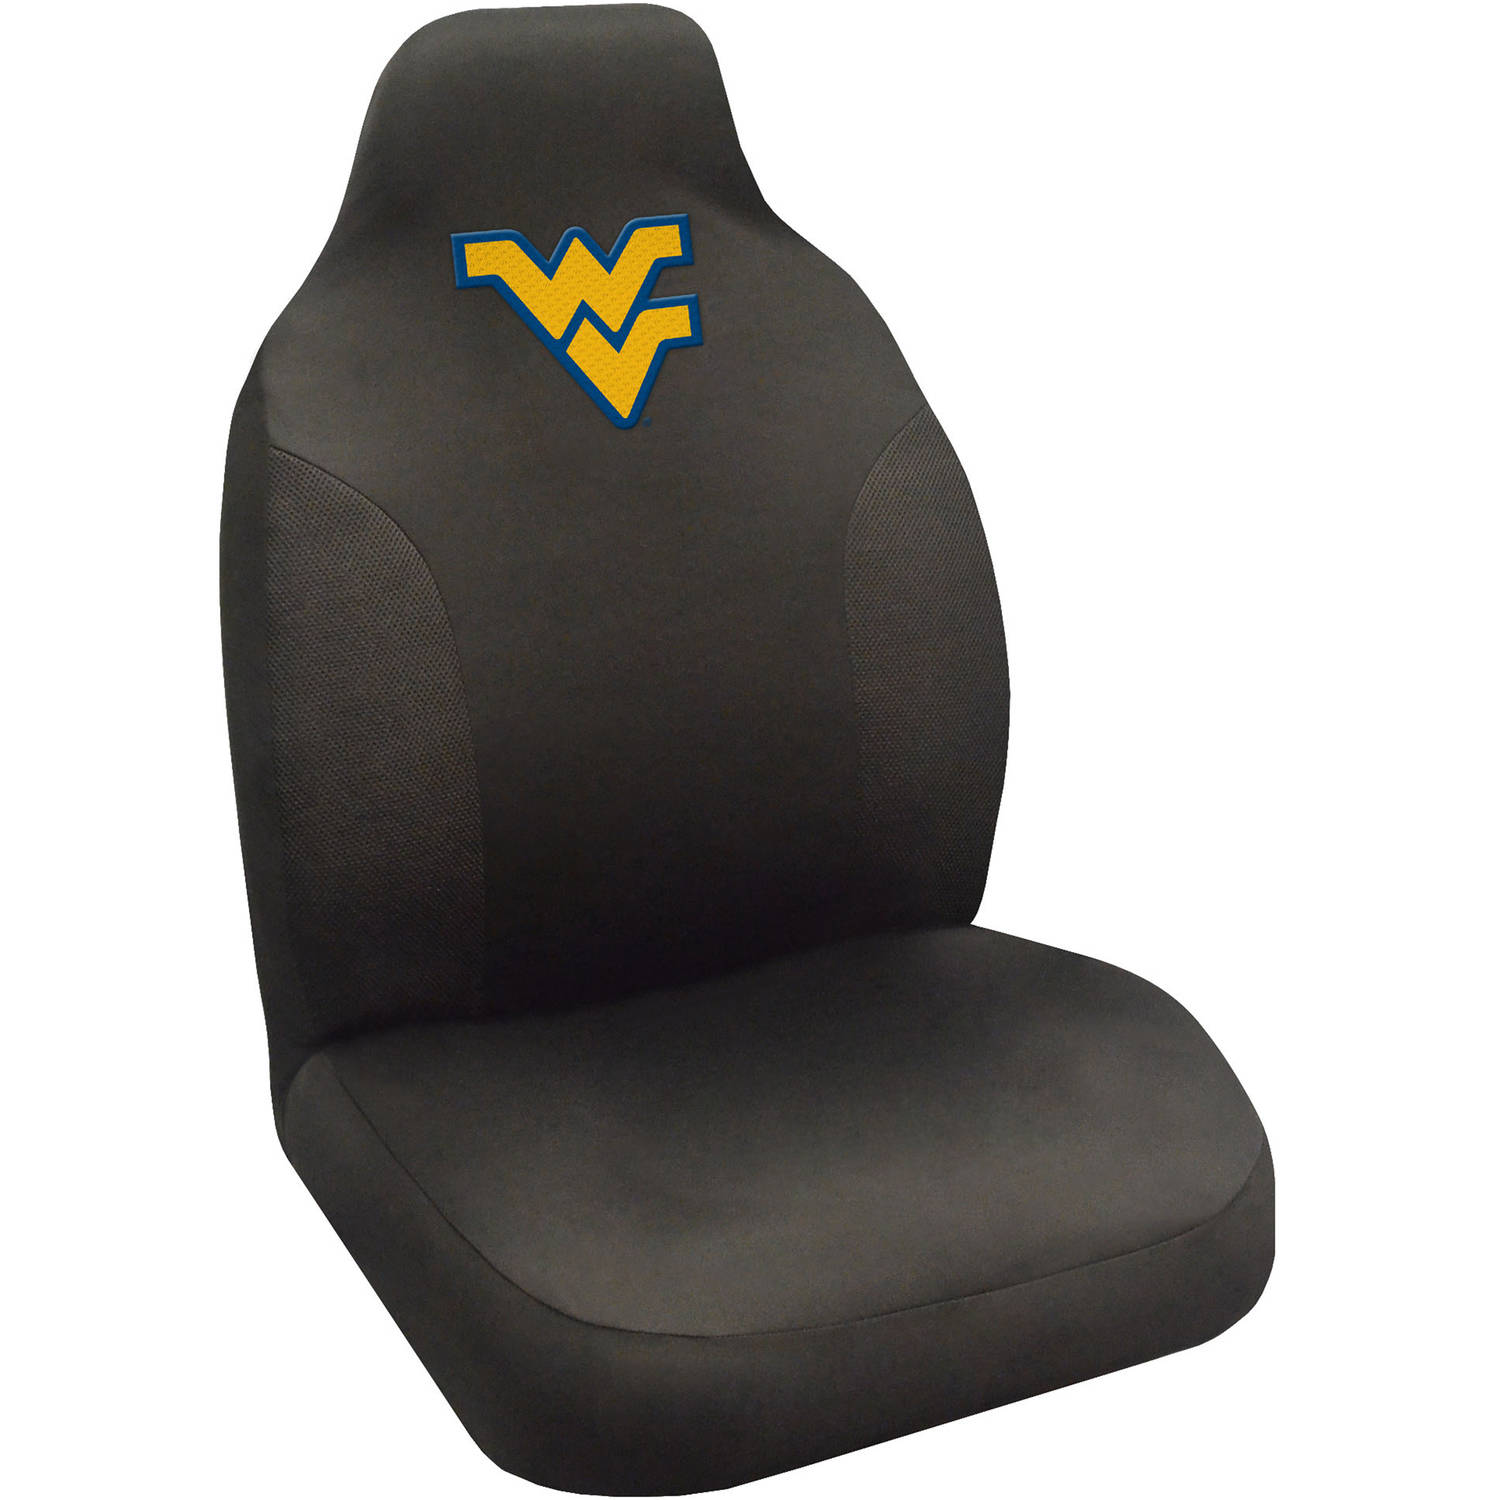 West Virginia University Seat Covers